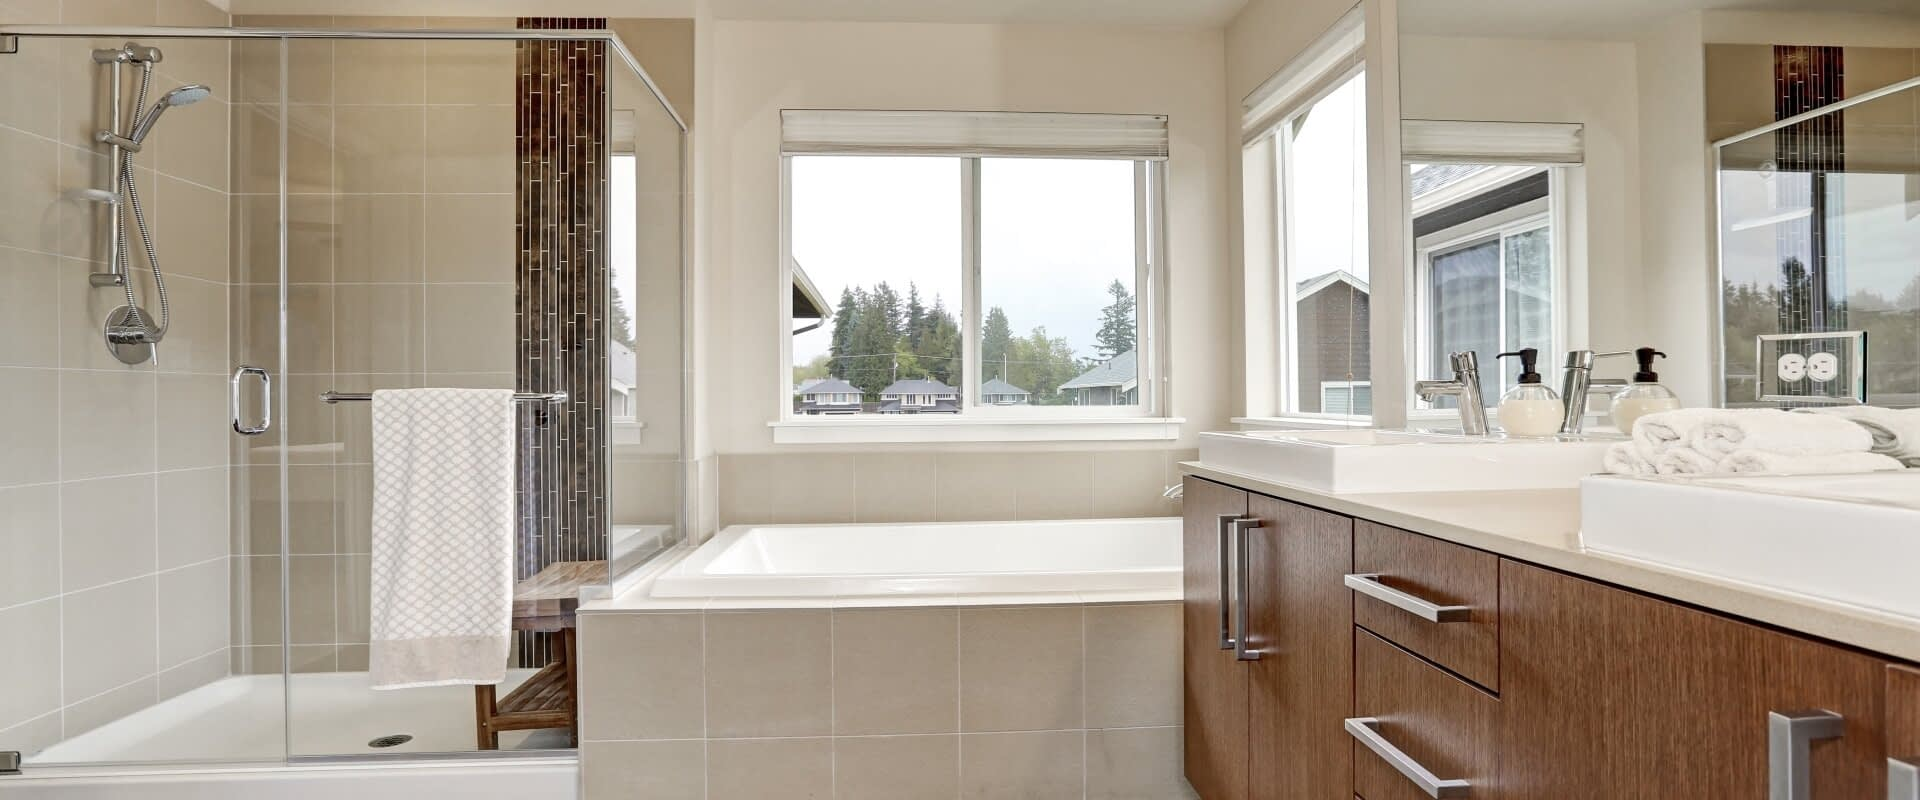 Modern Bathroom Renovation from Awesome Home Renovations